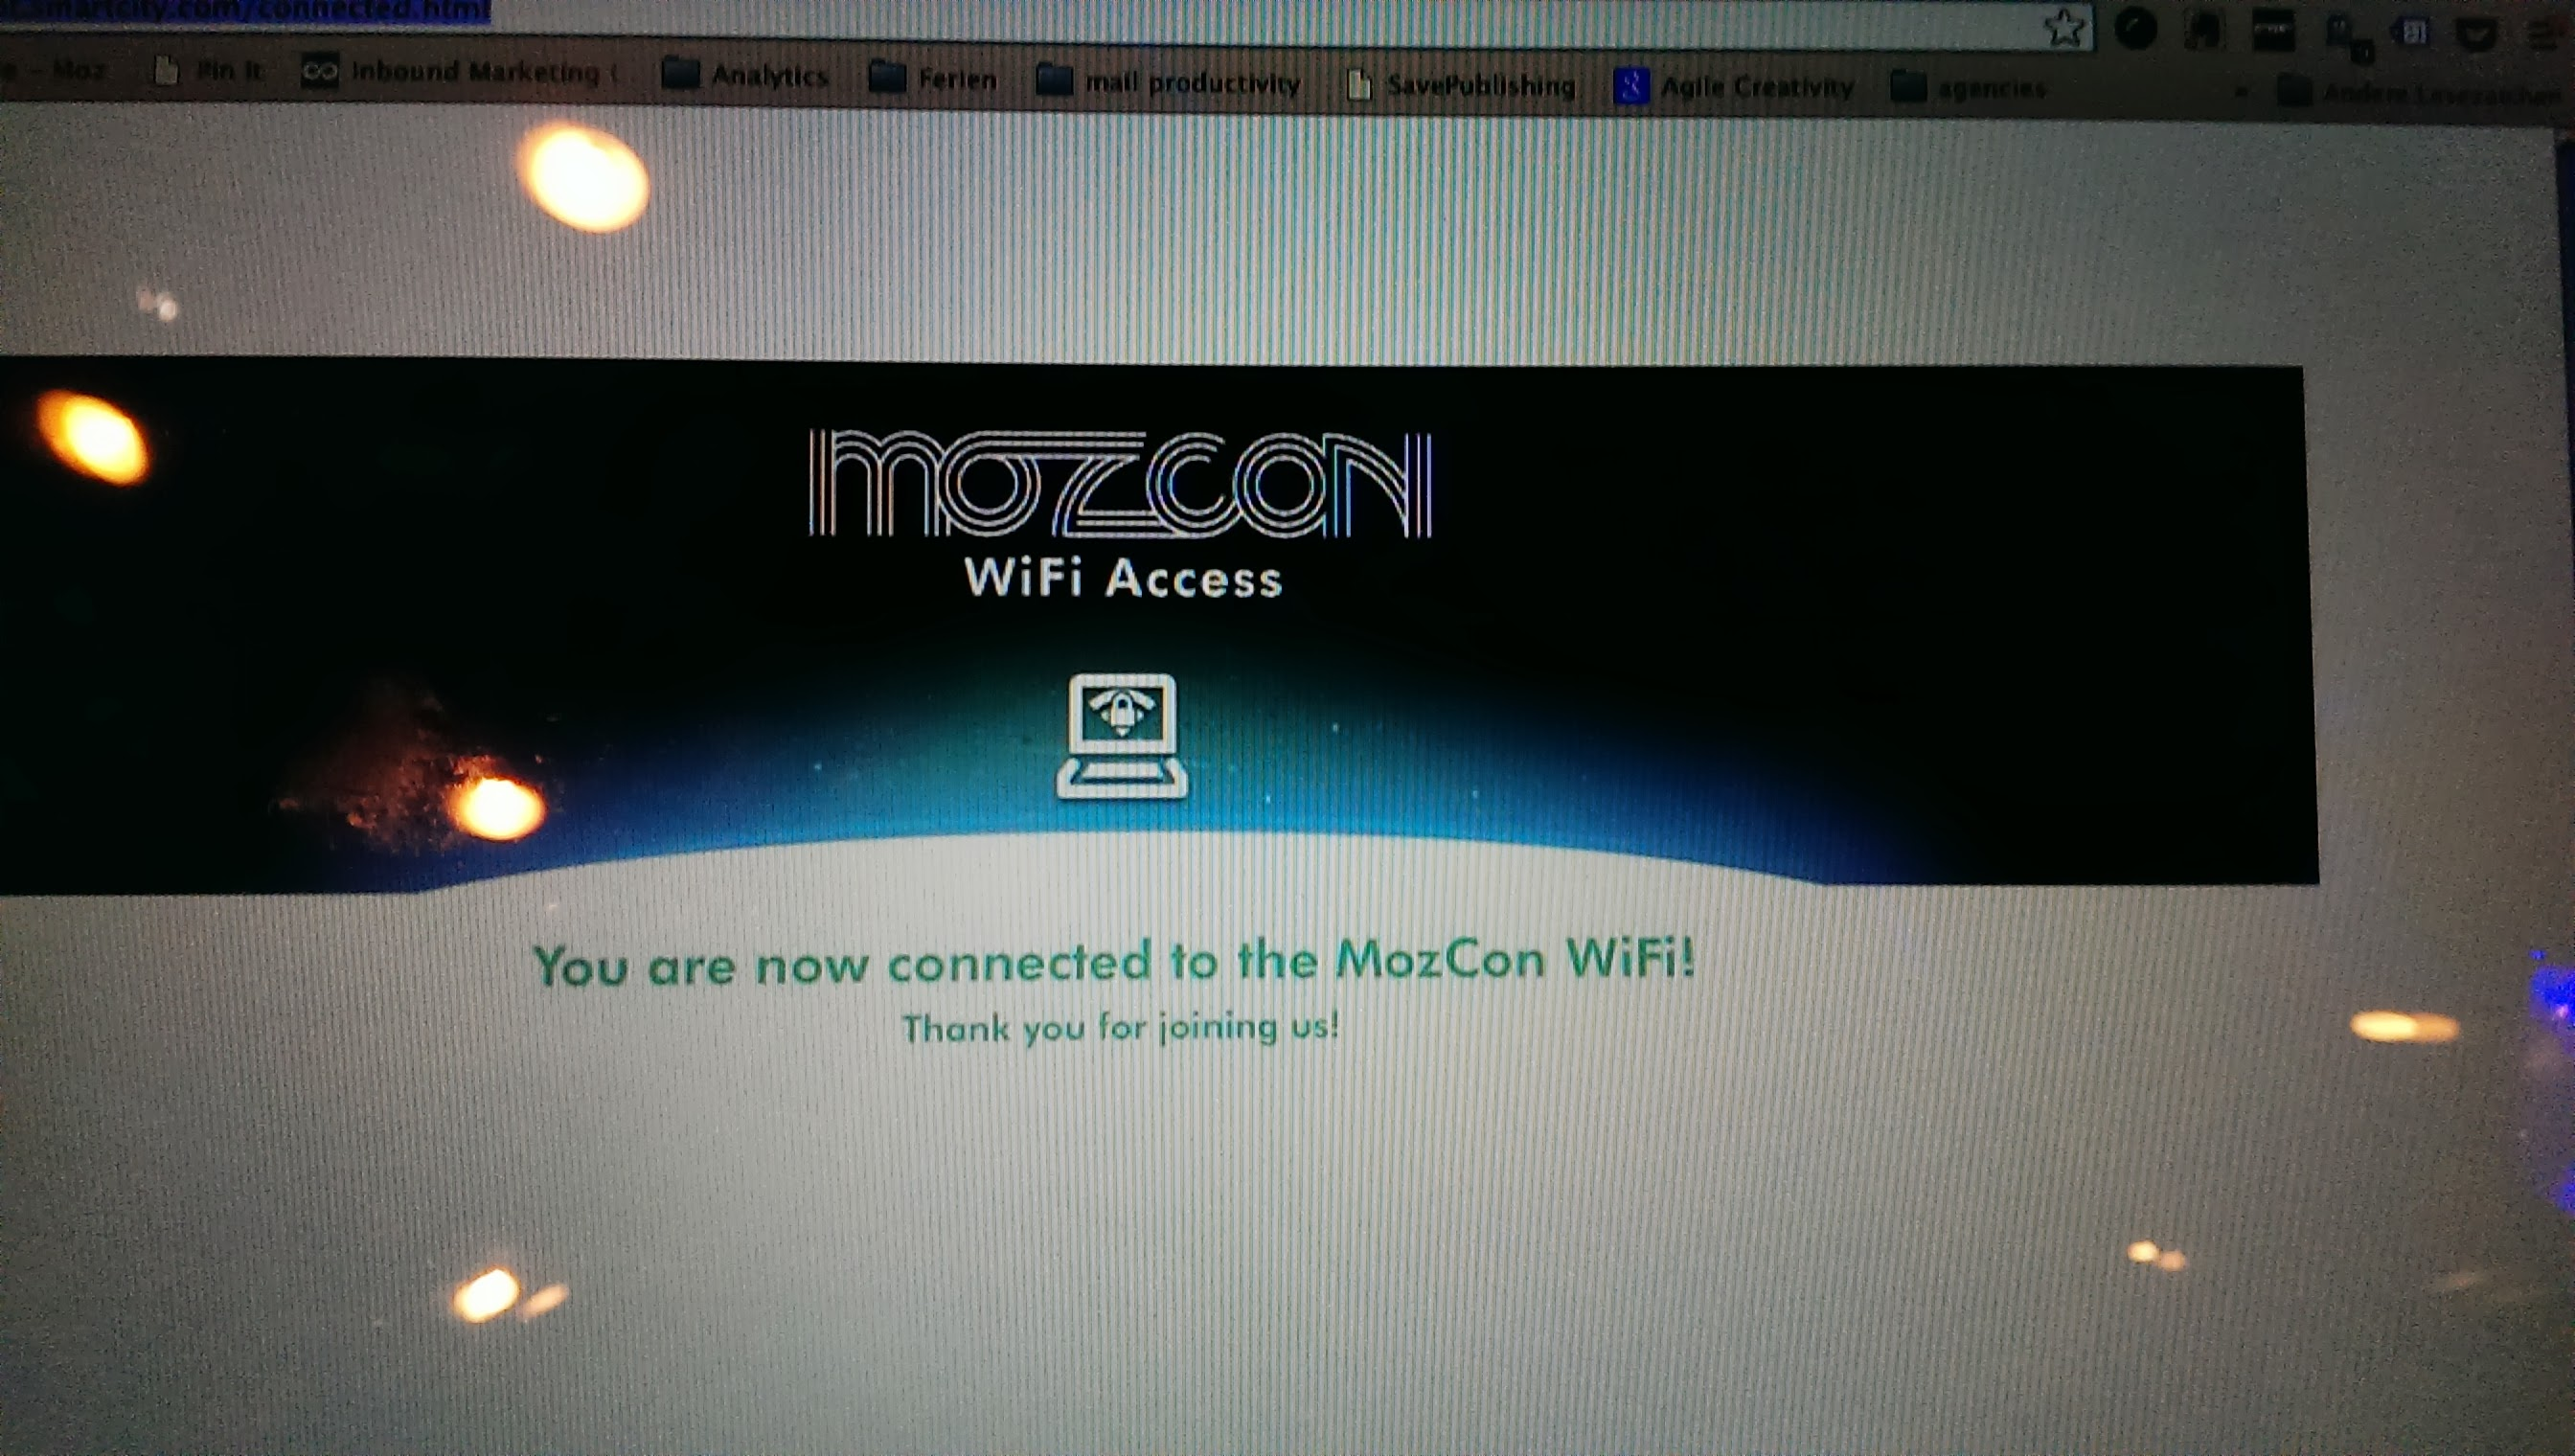 Connected to MozCon Wifi